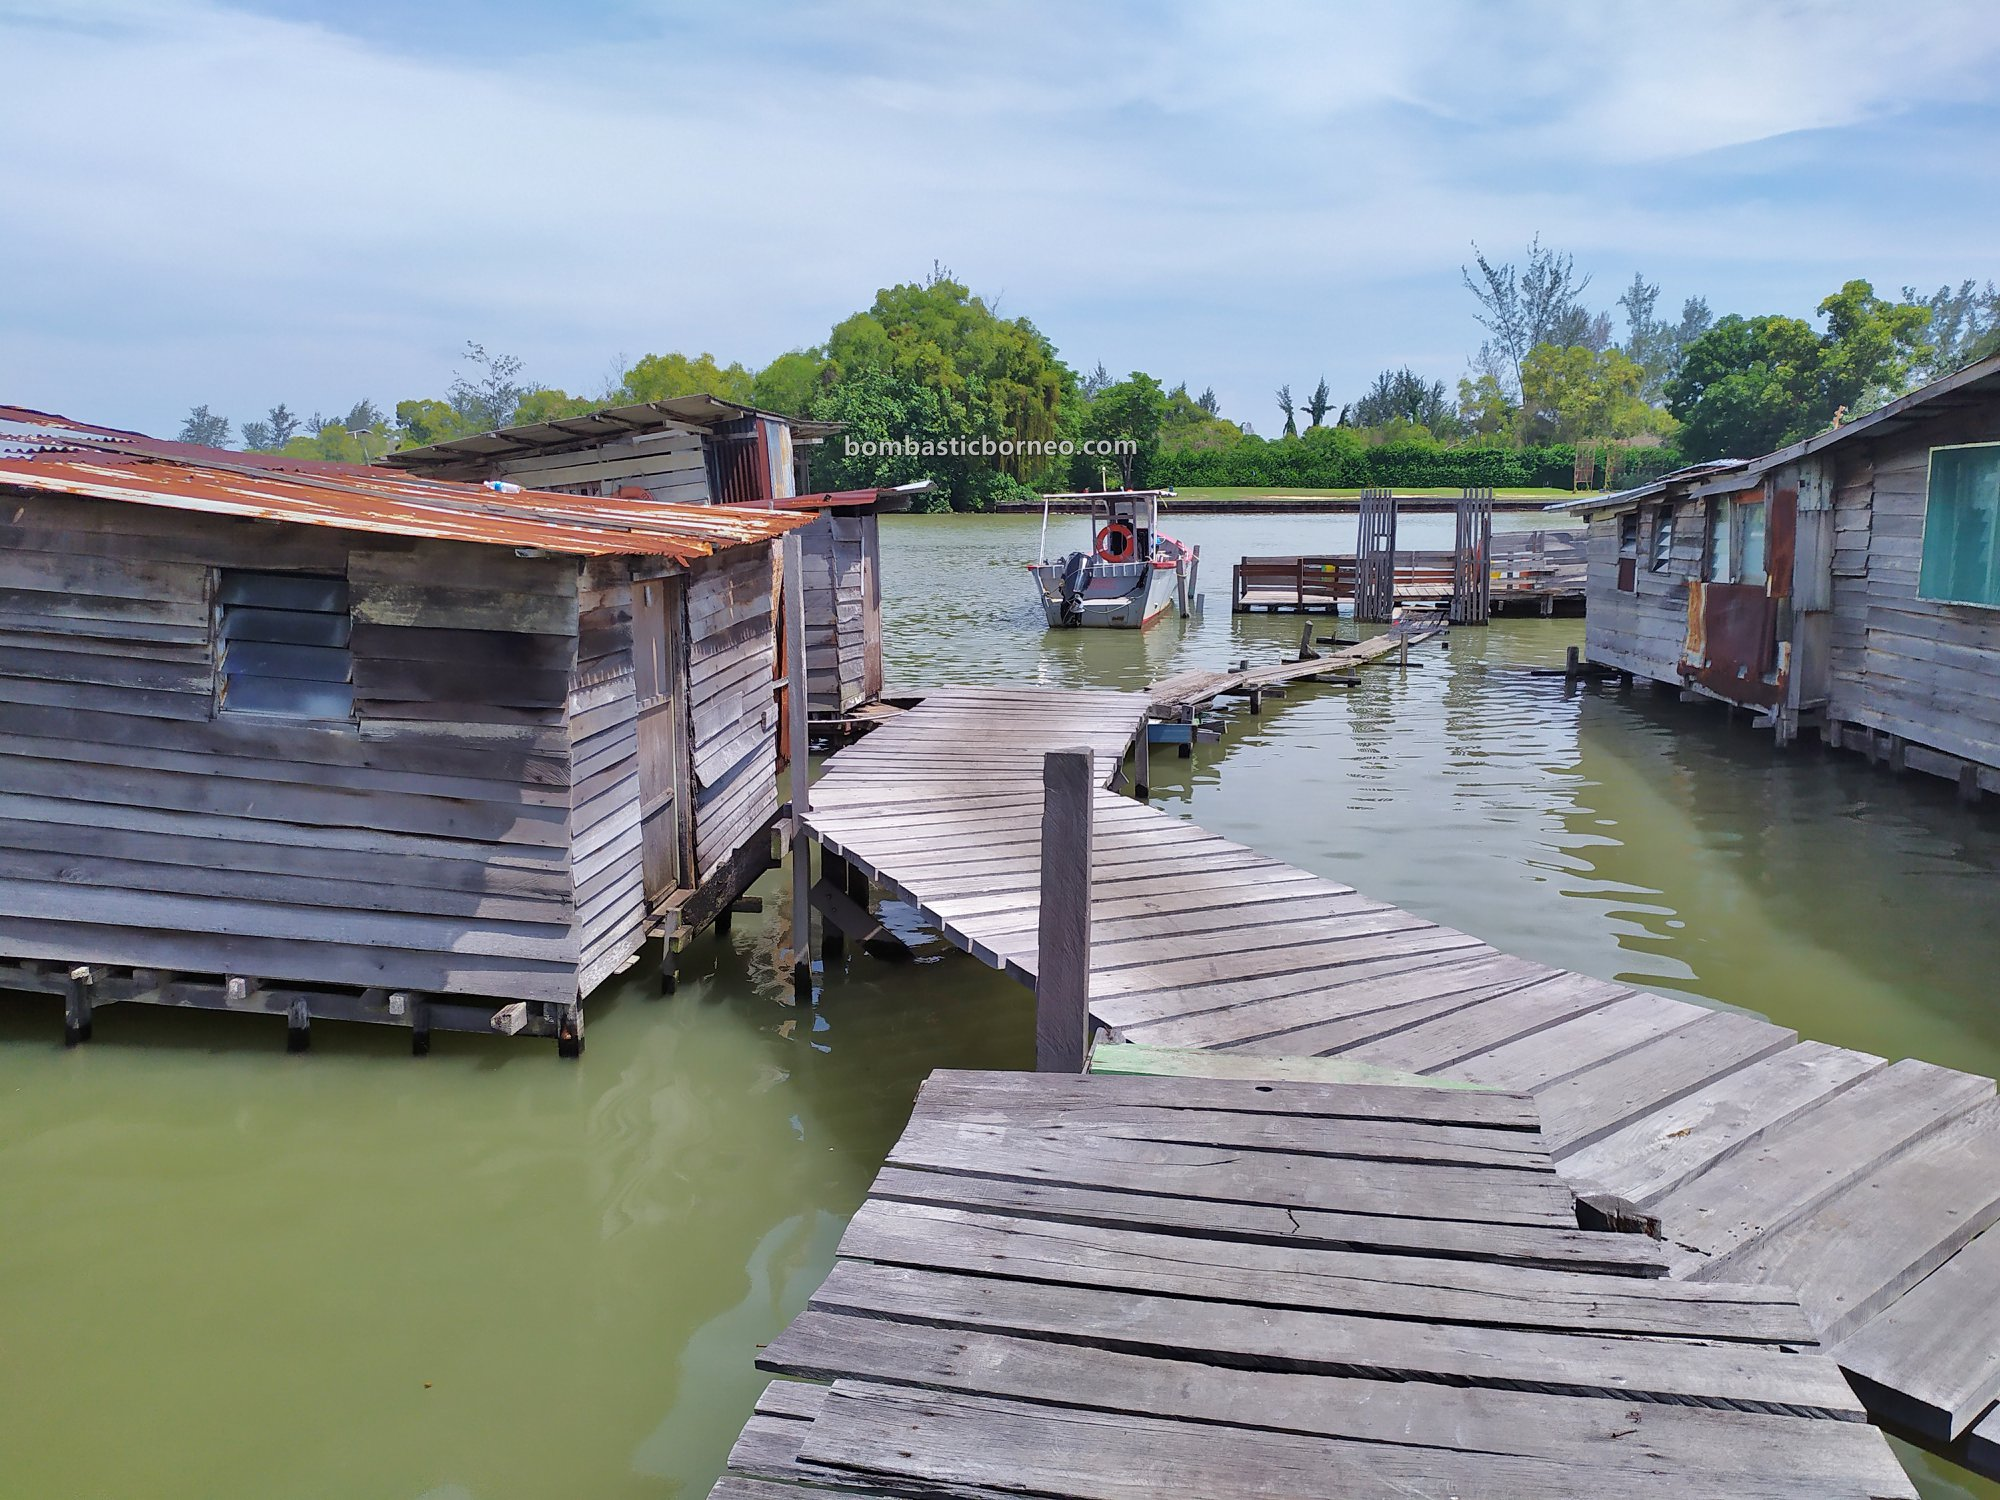 Sarawak, backpackers, destination, Discover Miri City, exploration, floating house, rumah terapung. Miri waterfront, Malaysia, Seahorse, Tourism, tourist attraction, travel guide, Borneo